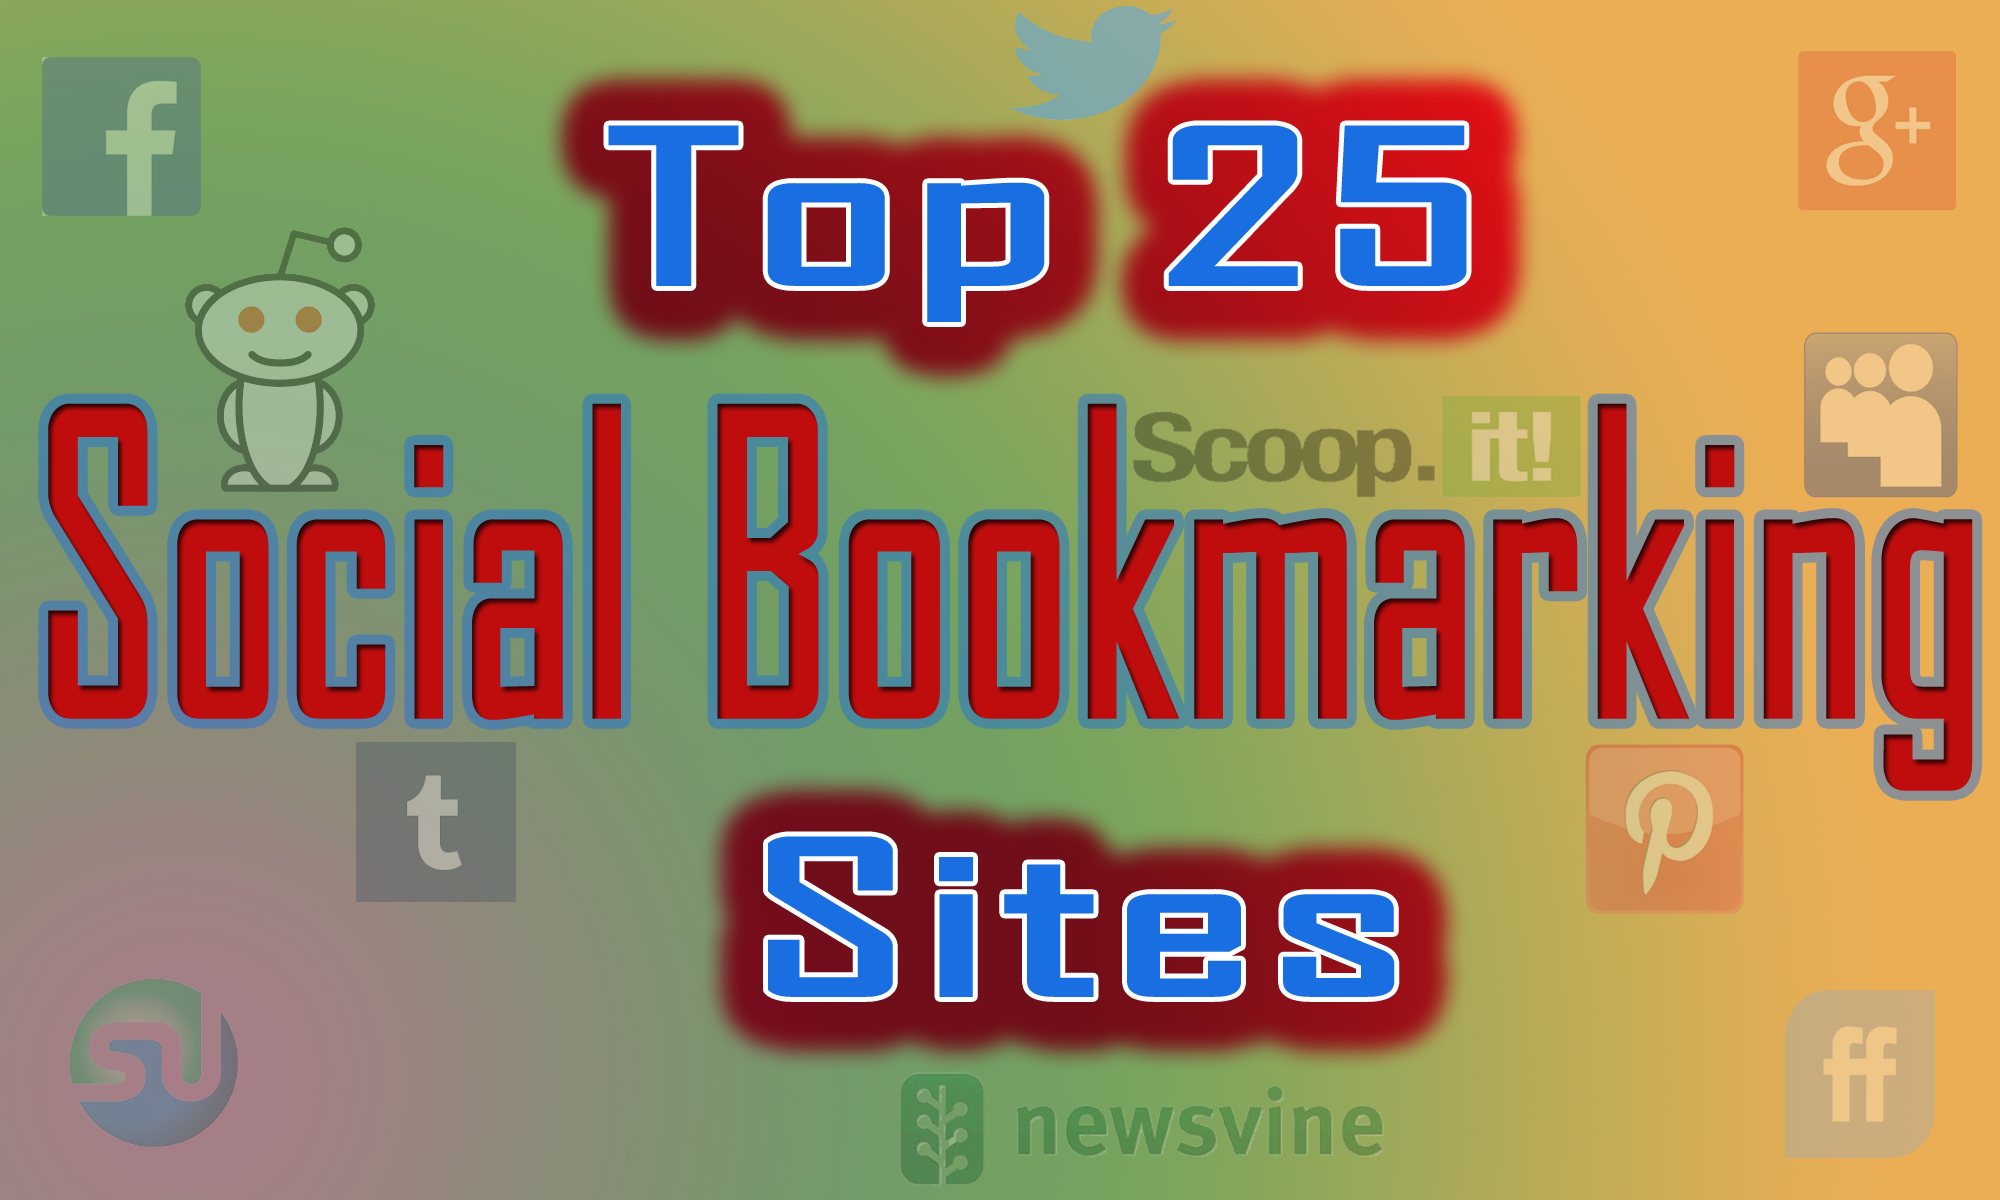 . Instantly Provide you manually 25 Top PR10-5 Social Bookmarks On Your Site with report within 8-10 hrs